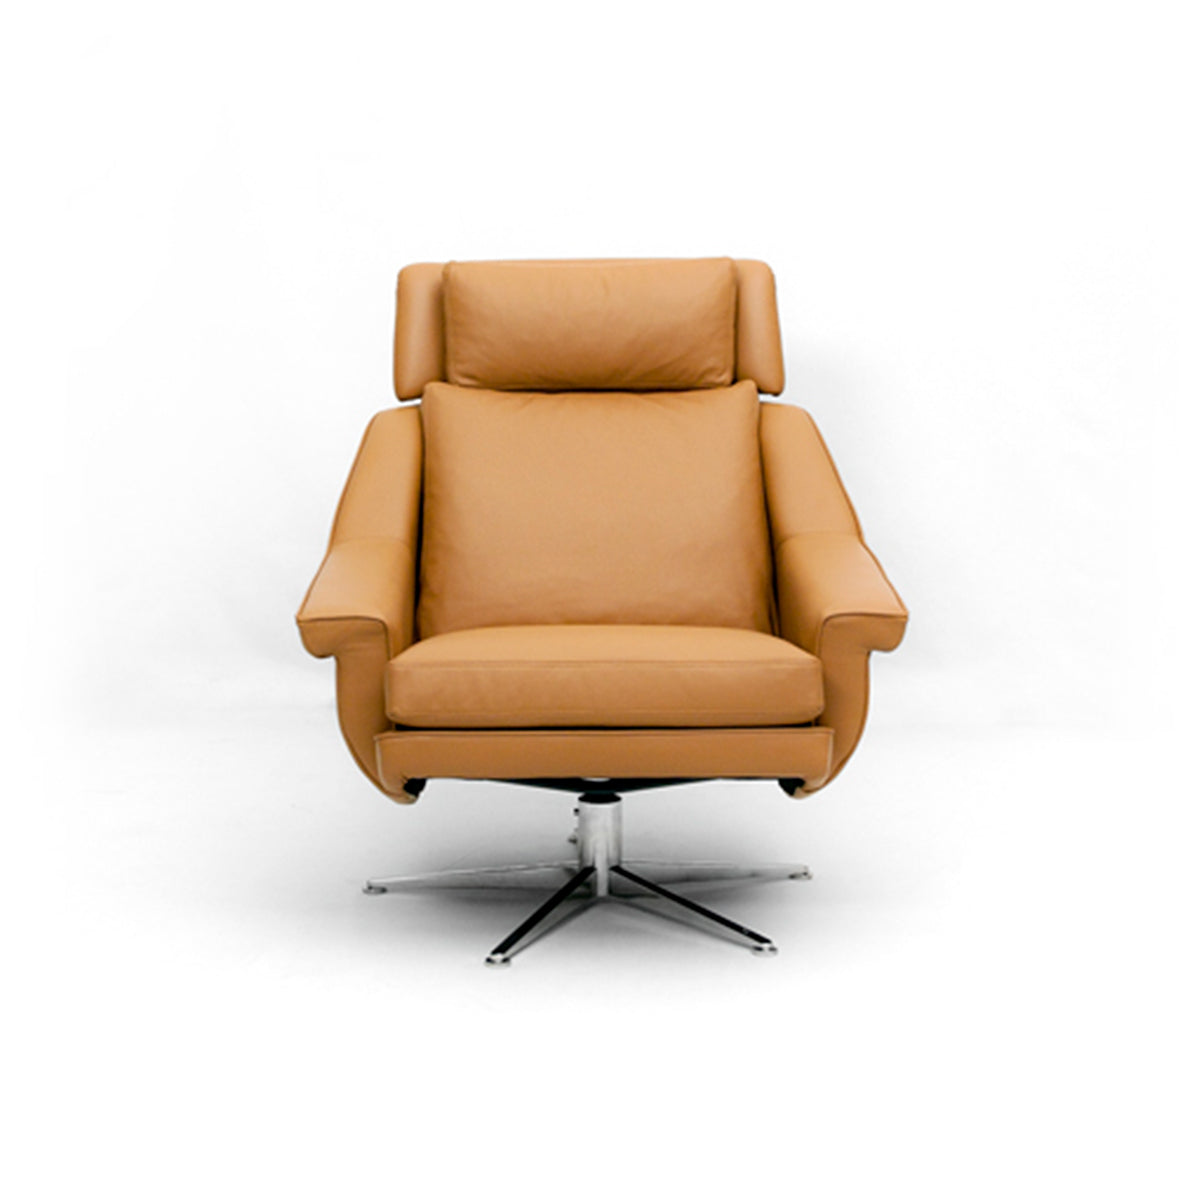 Max Tan Leather Armchair